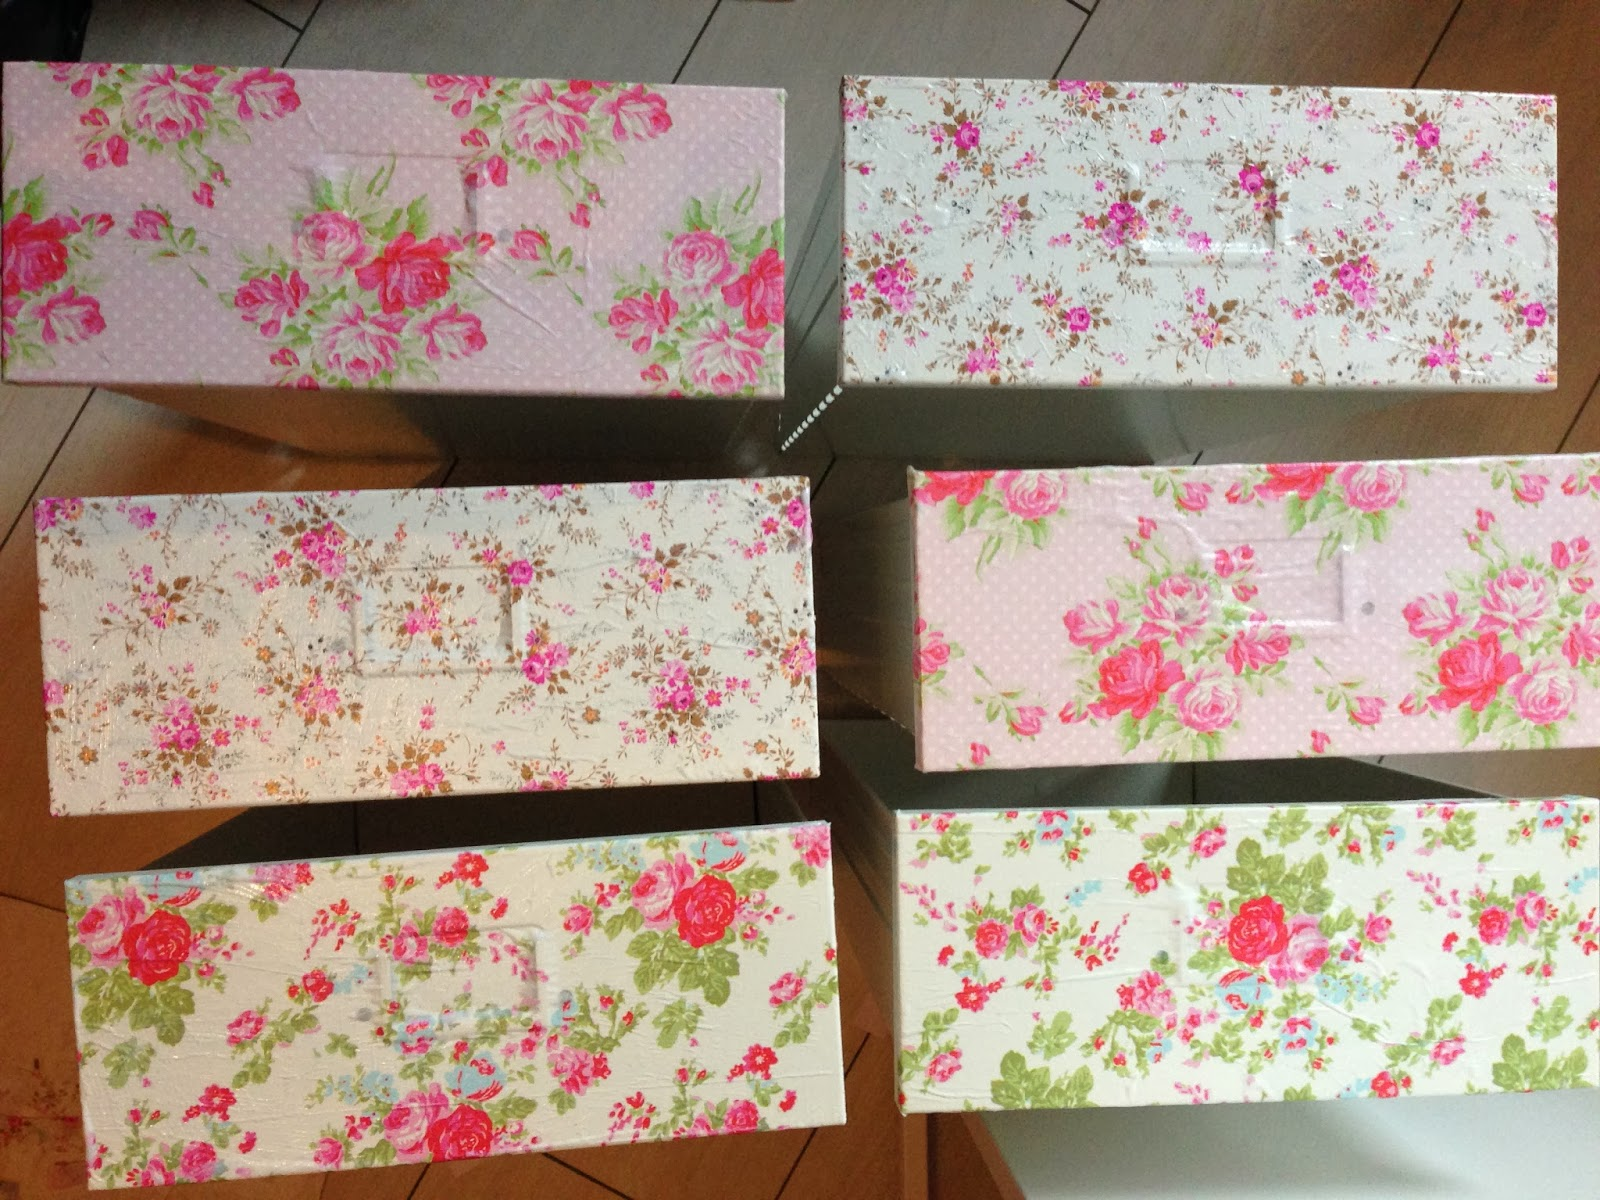 ikea helmer drawers with floral paper decoupage